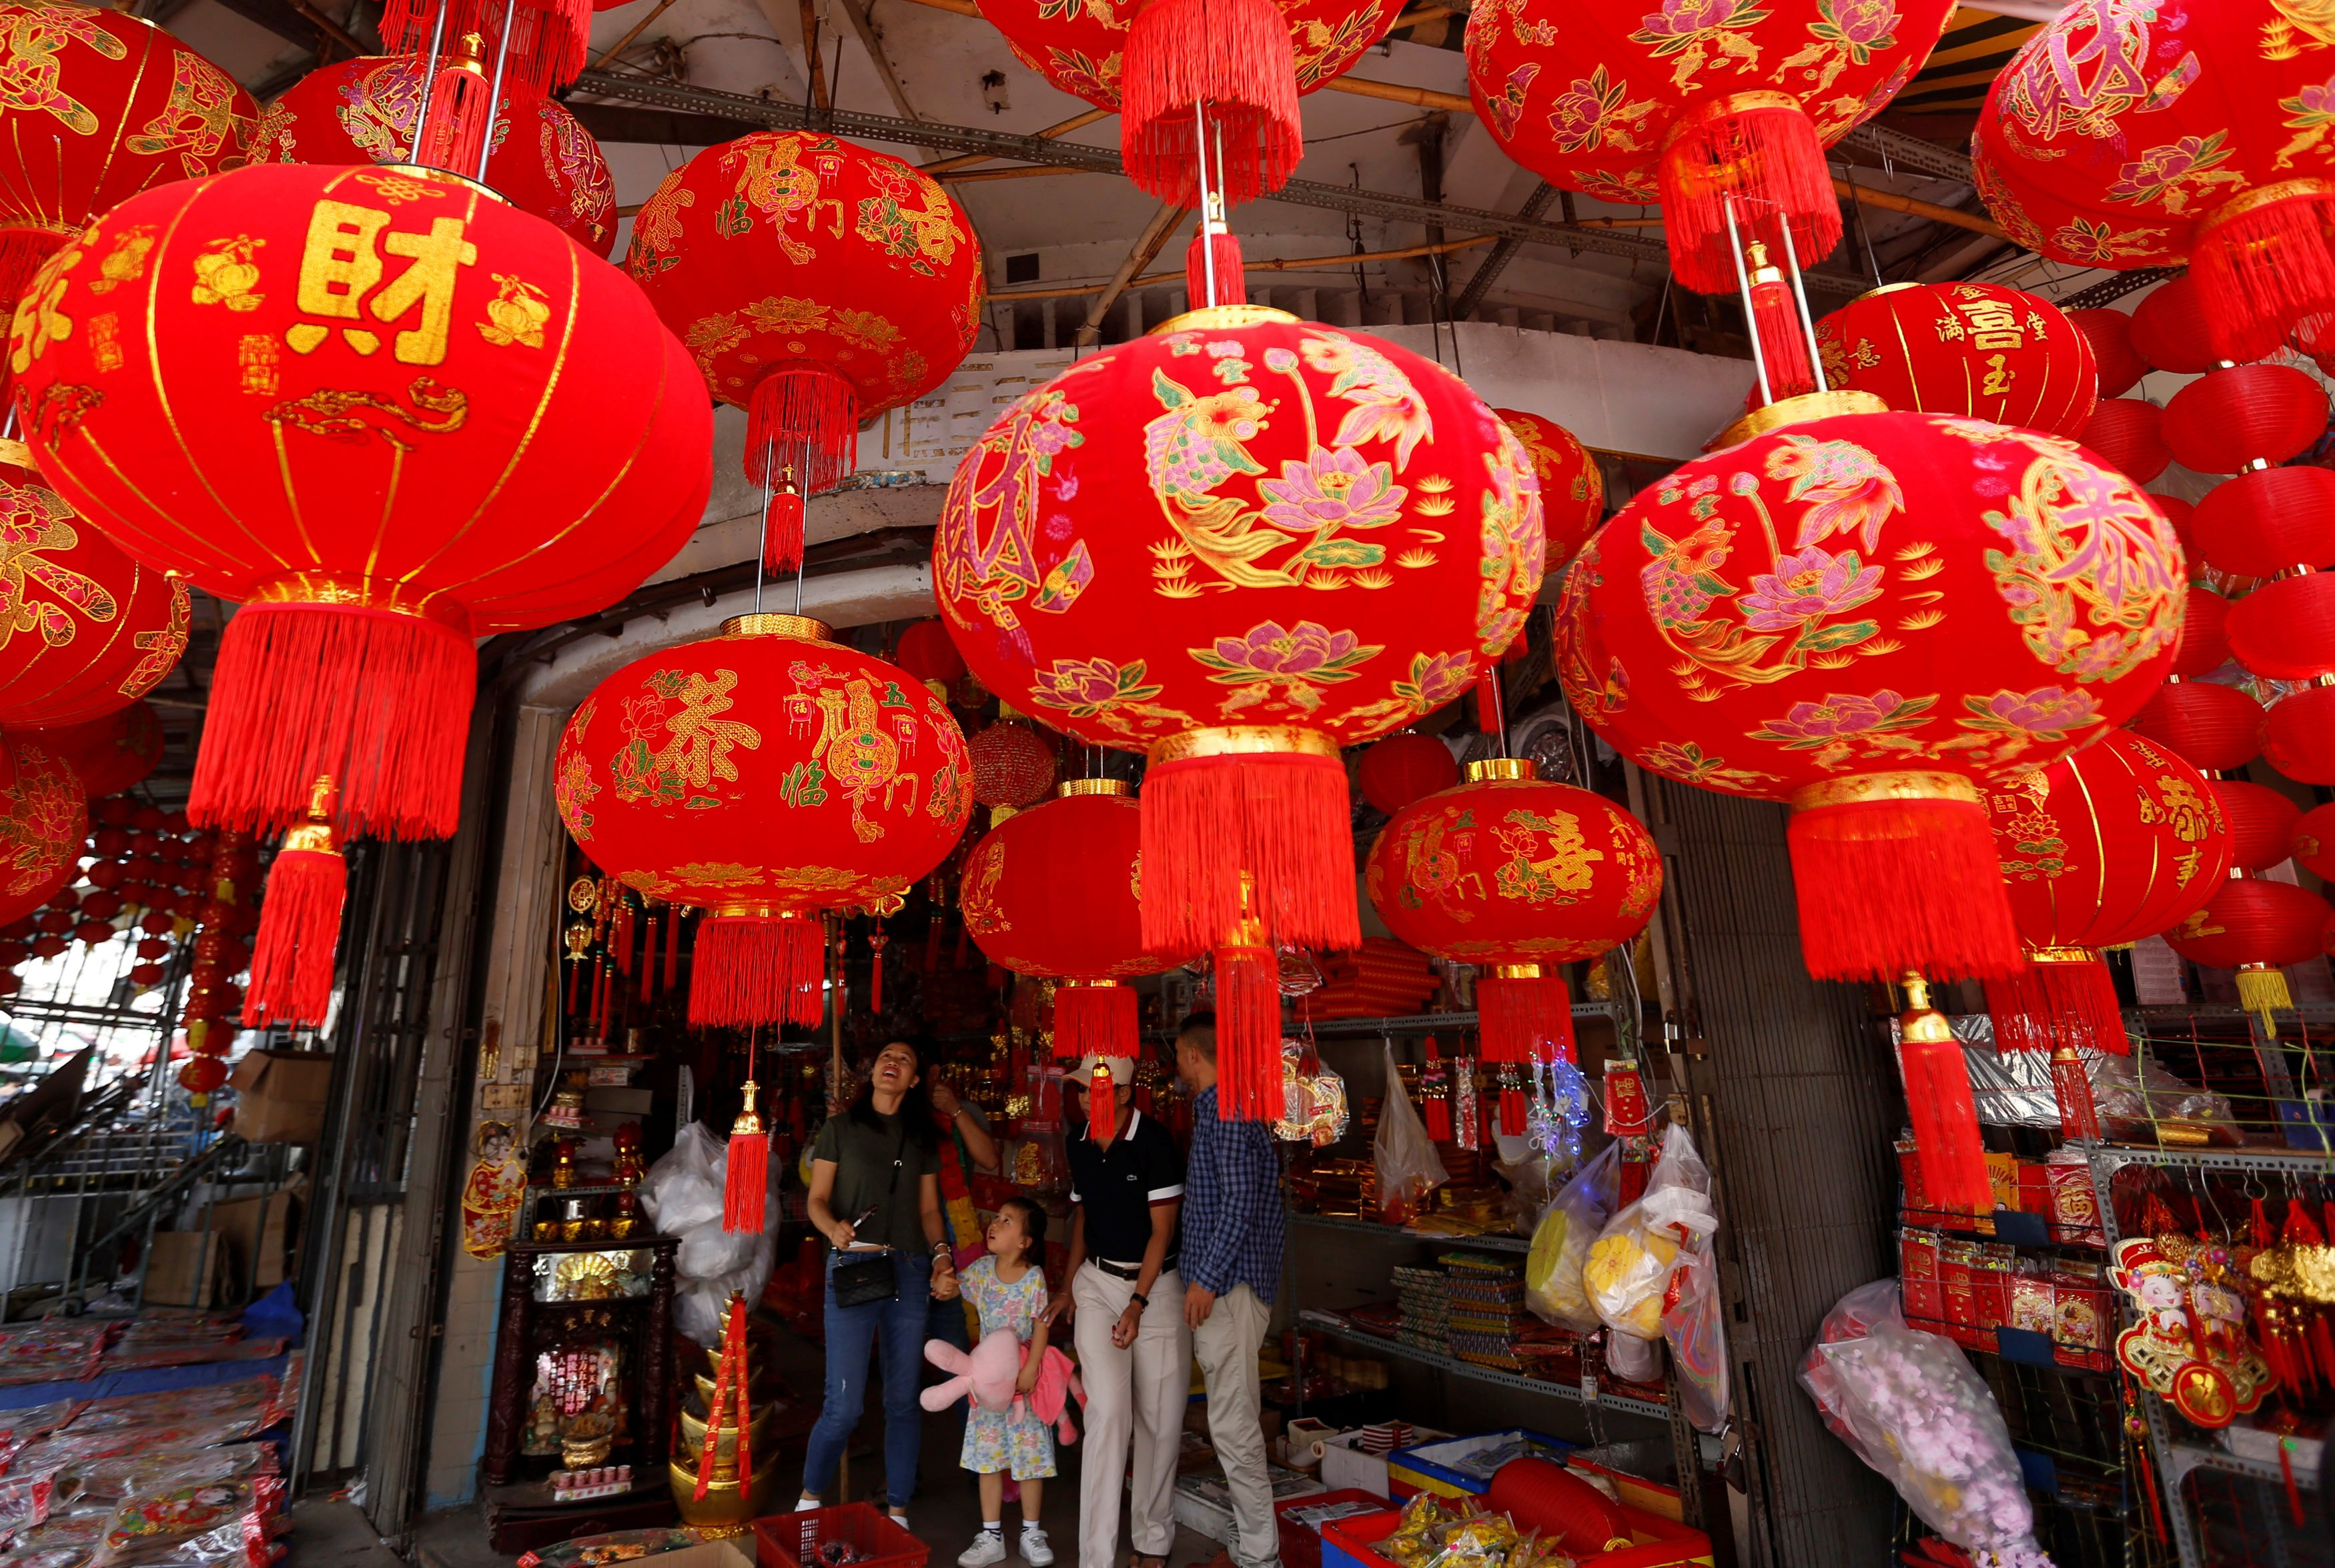 10 lunar new year facts to help answer your pressing questions - When Does The Chinese New Year Start